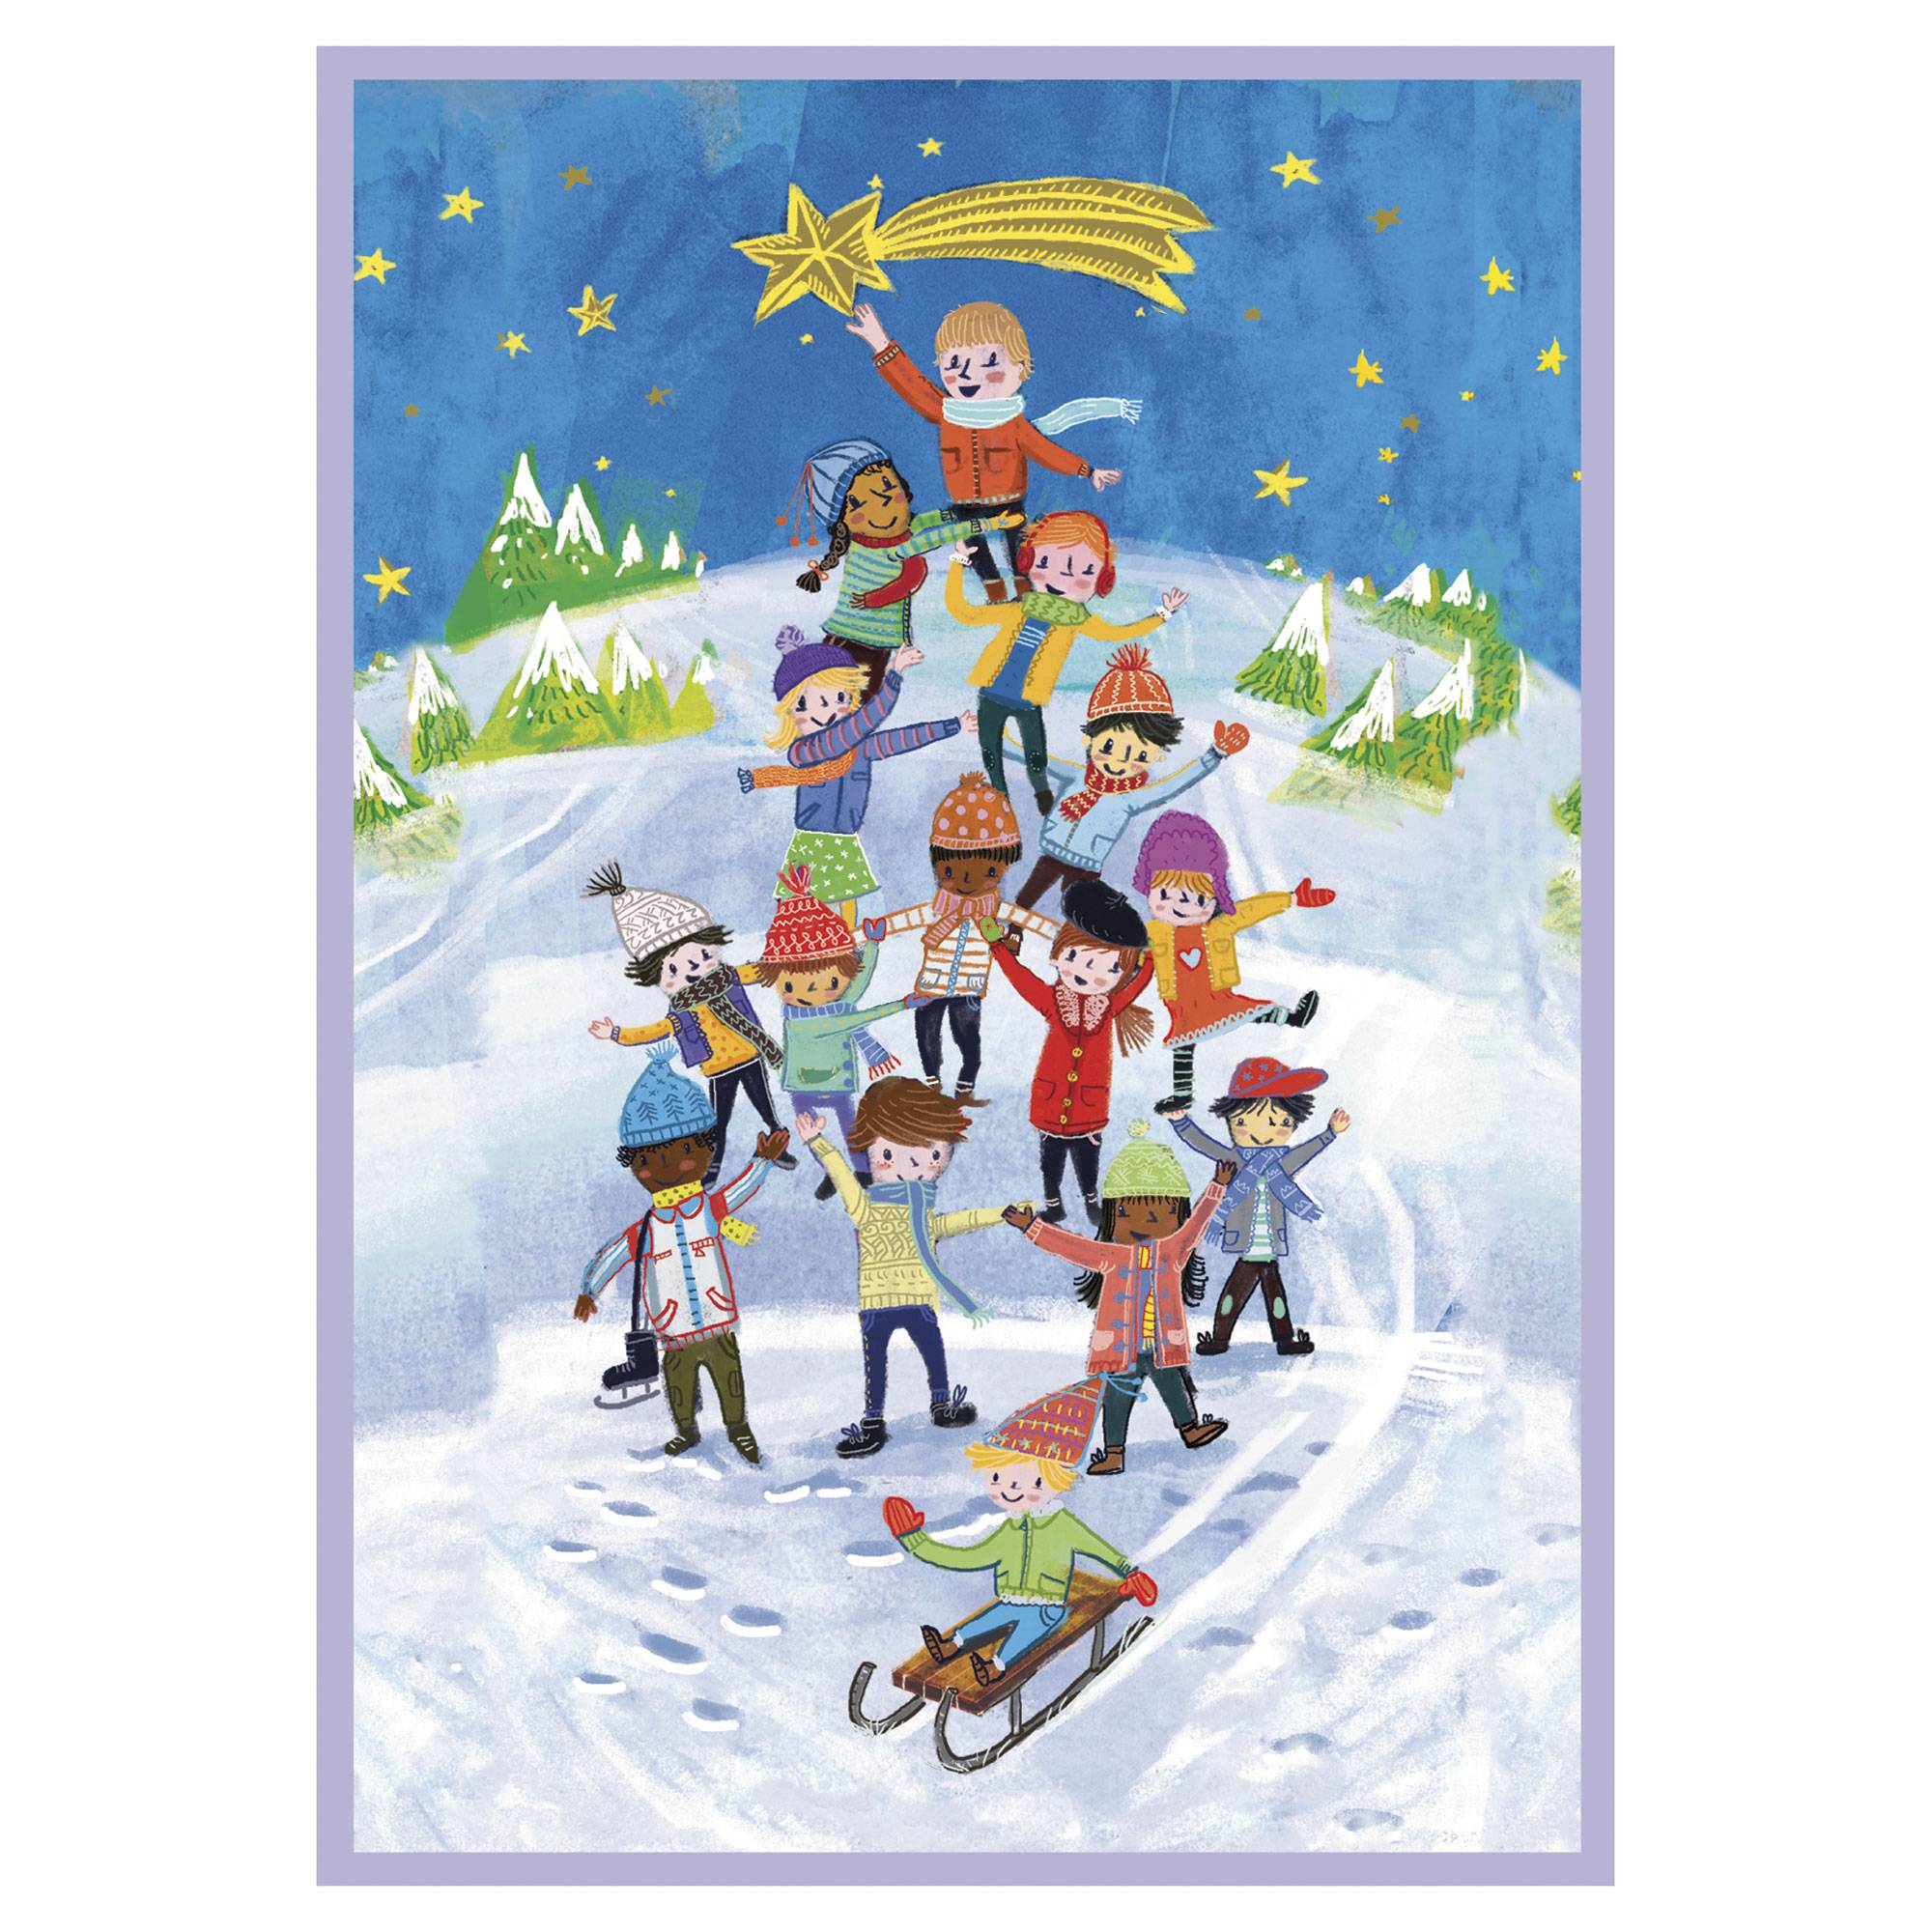 Dec 31, · NEW YORK, December 5, — UNICEF holiday greeting cards have been an iconic symbol of the spirit of the holidays since